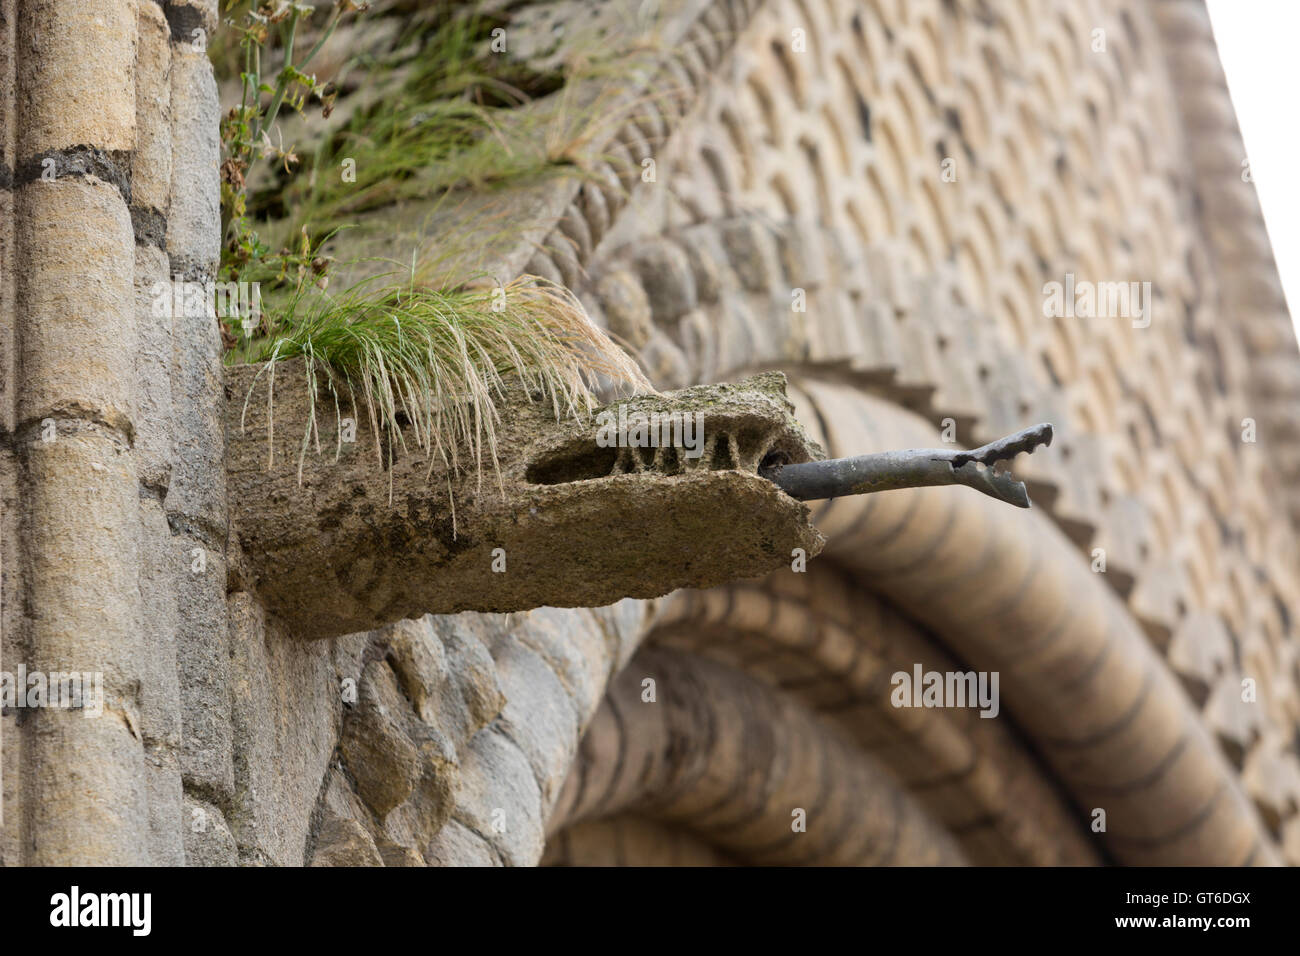 Stone gargoyle water spout with punk style grass hair like growing on top. Unsharpened - Stock Image